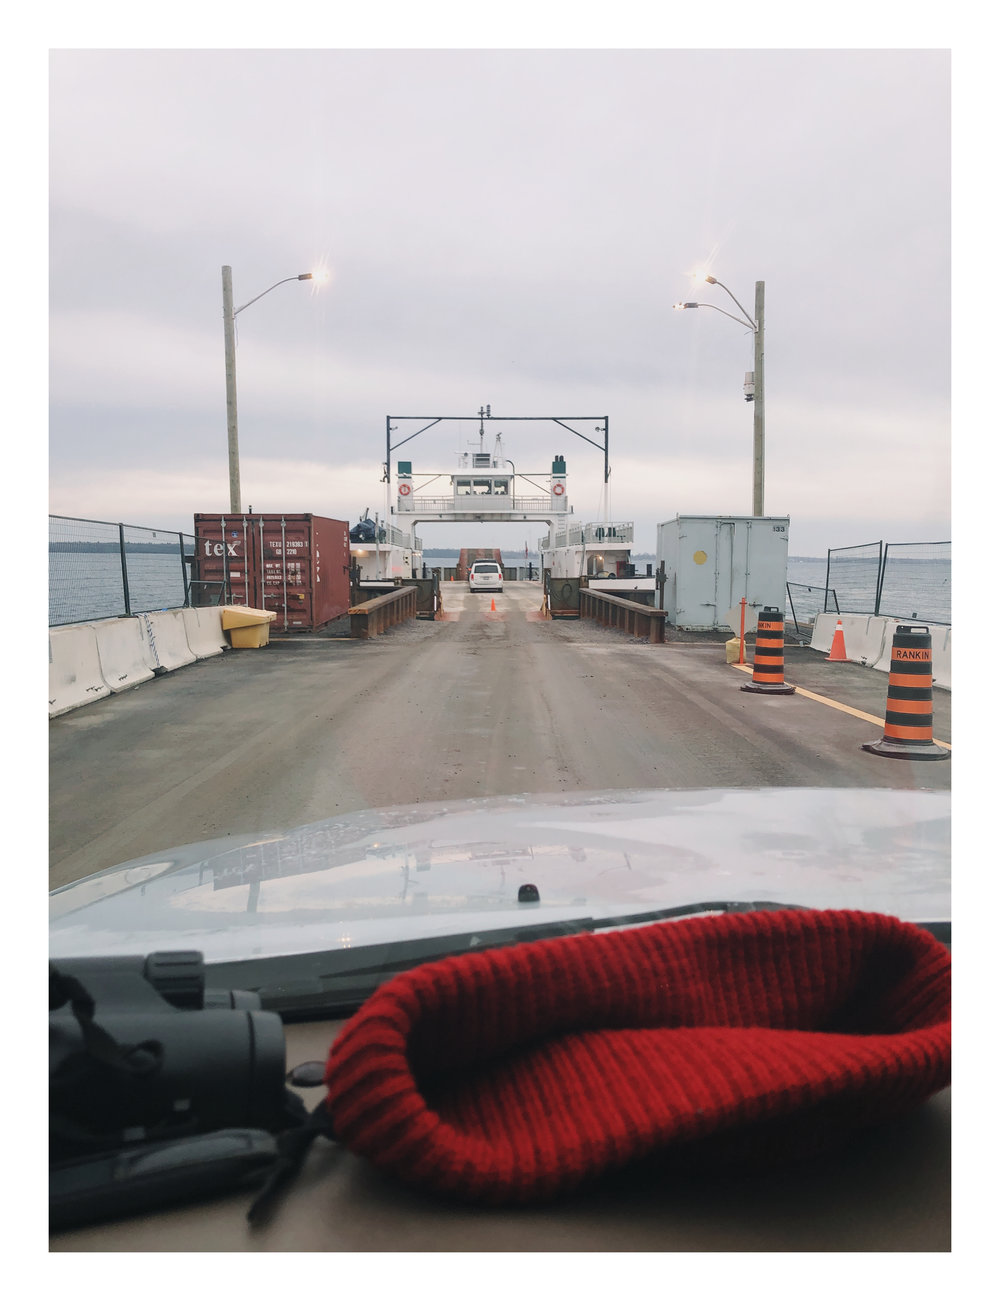 Waiting to get on the ferry (iphone)